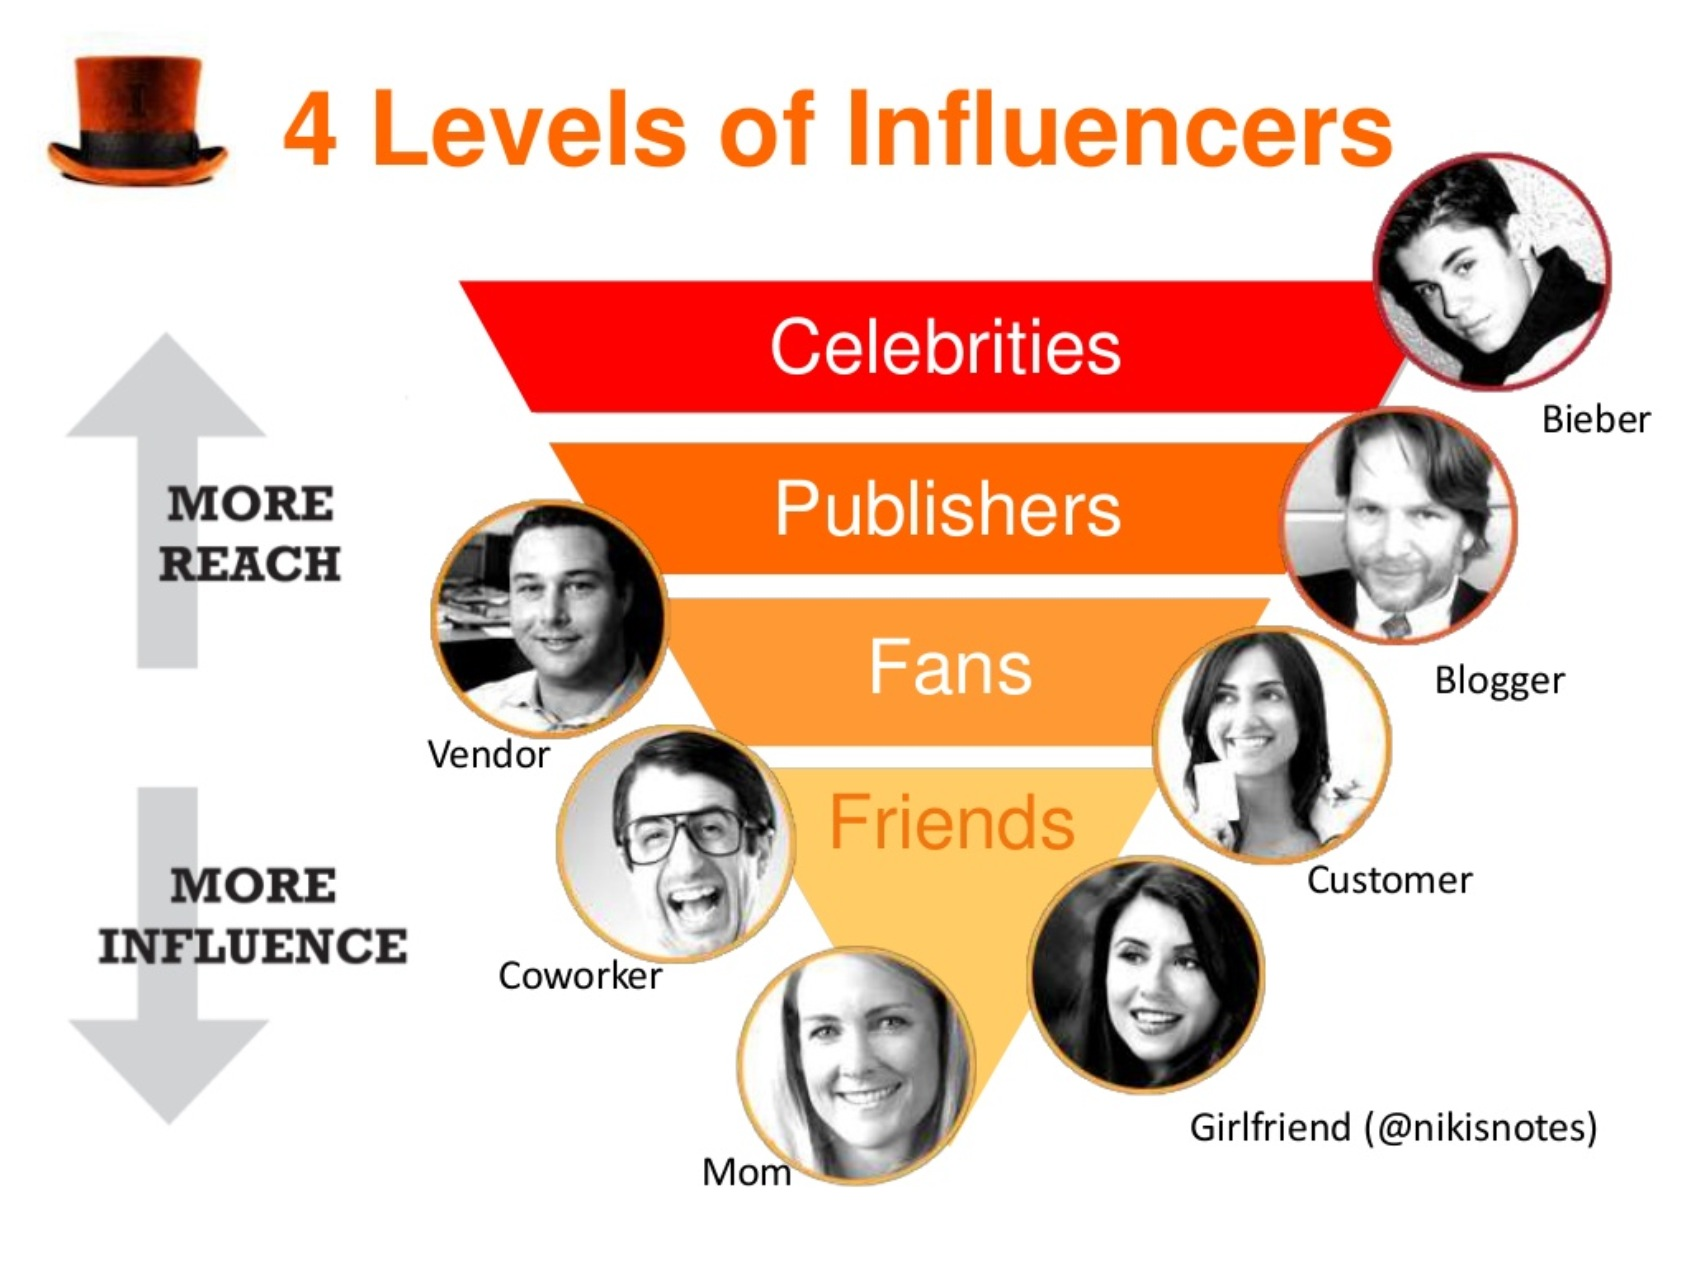 Influencer vs Celebrities